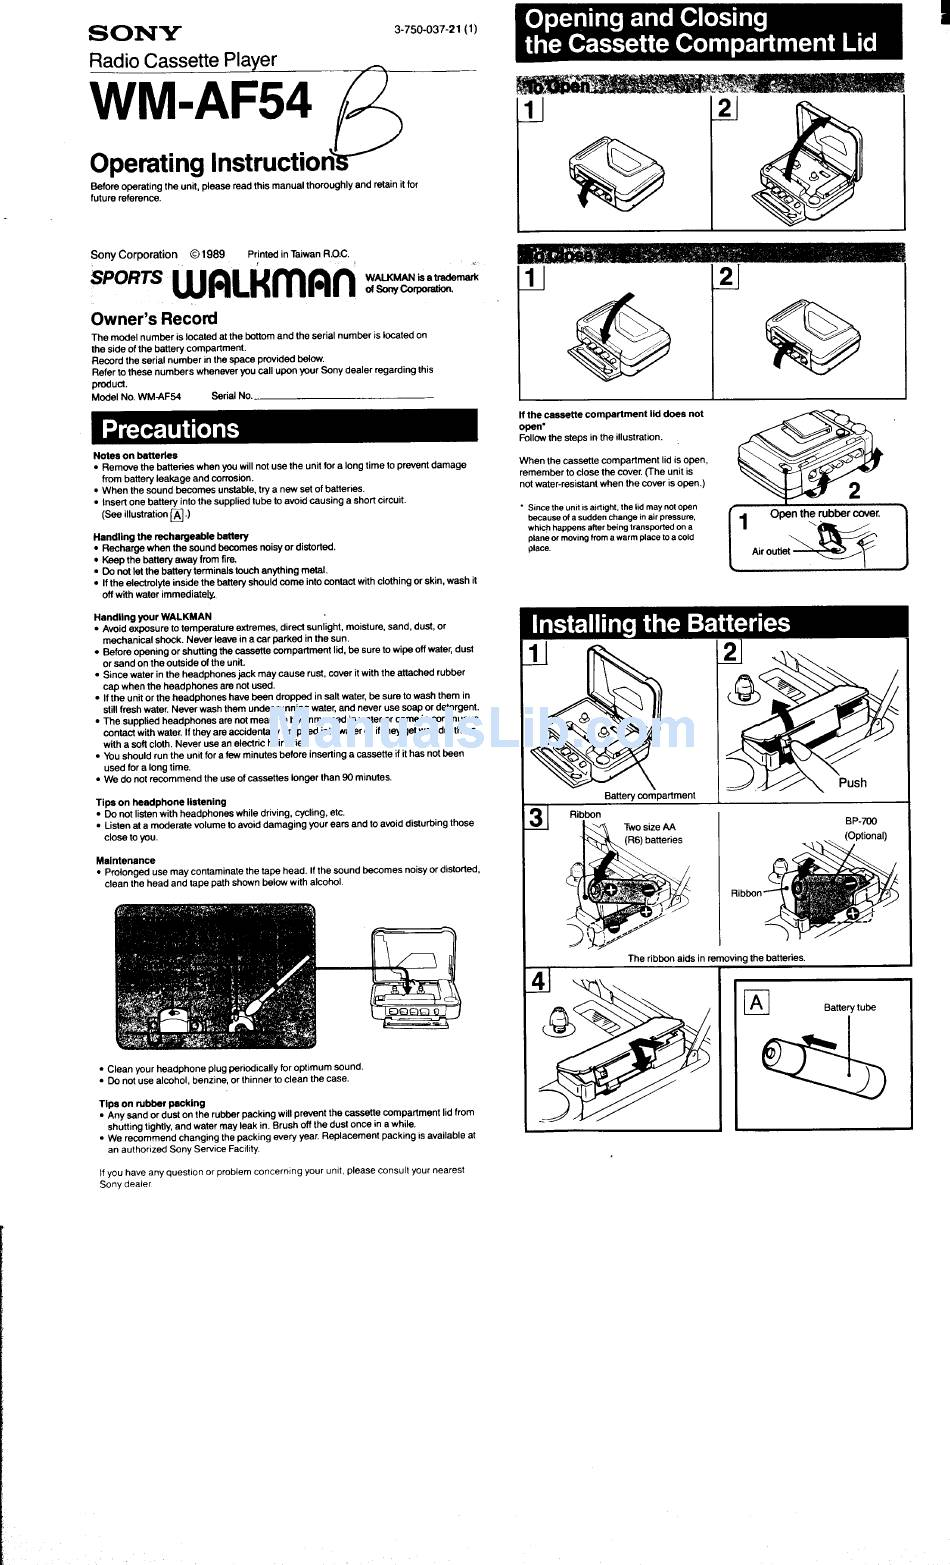 SONY WALKMAN WM-AF54 OPERATING INSTRUCTIONS Pdf Download